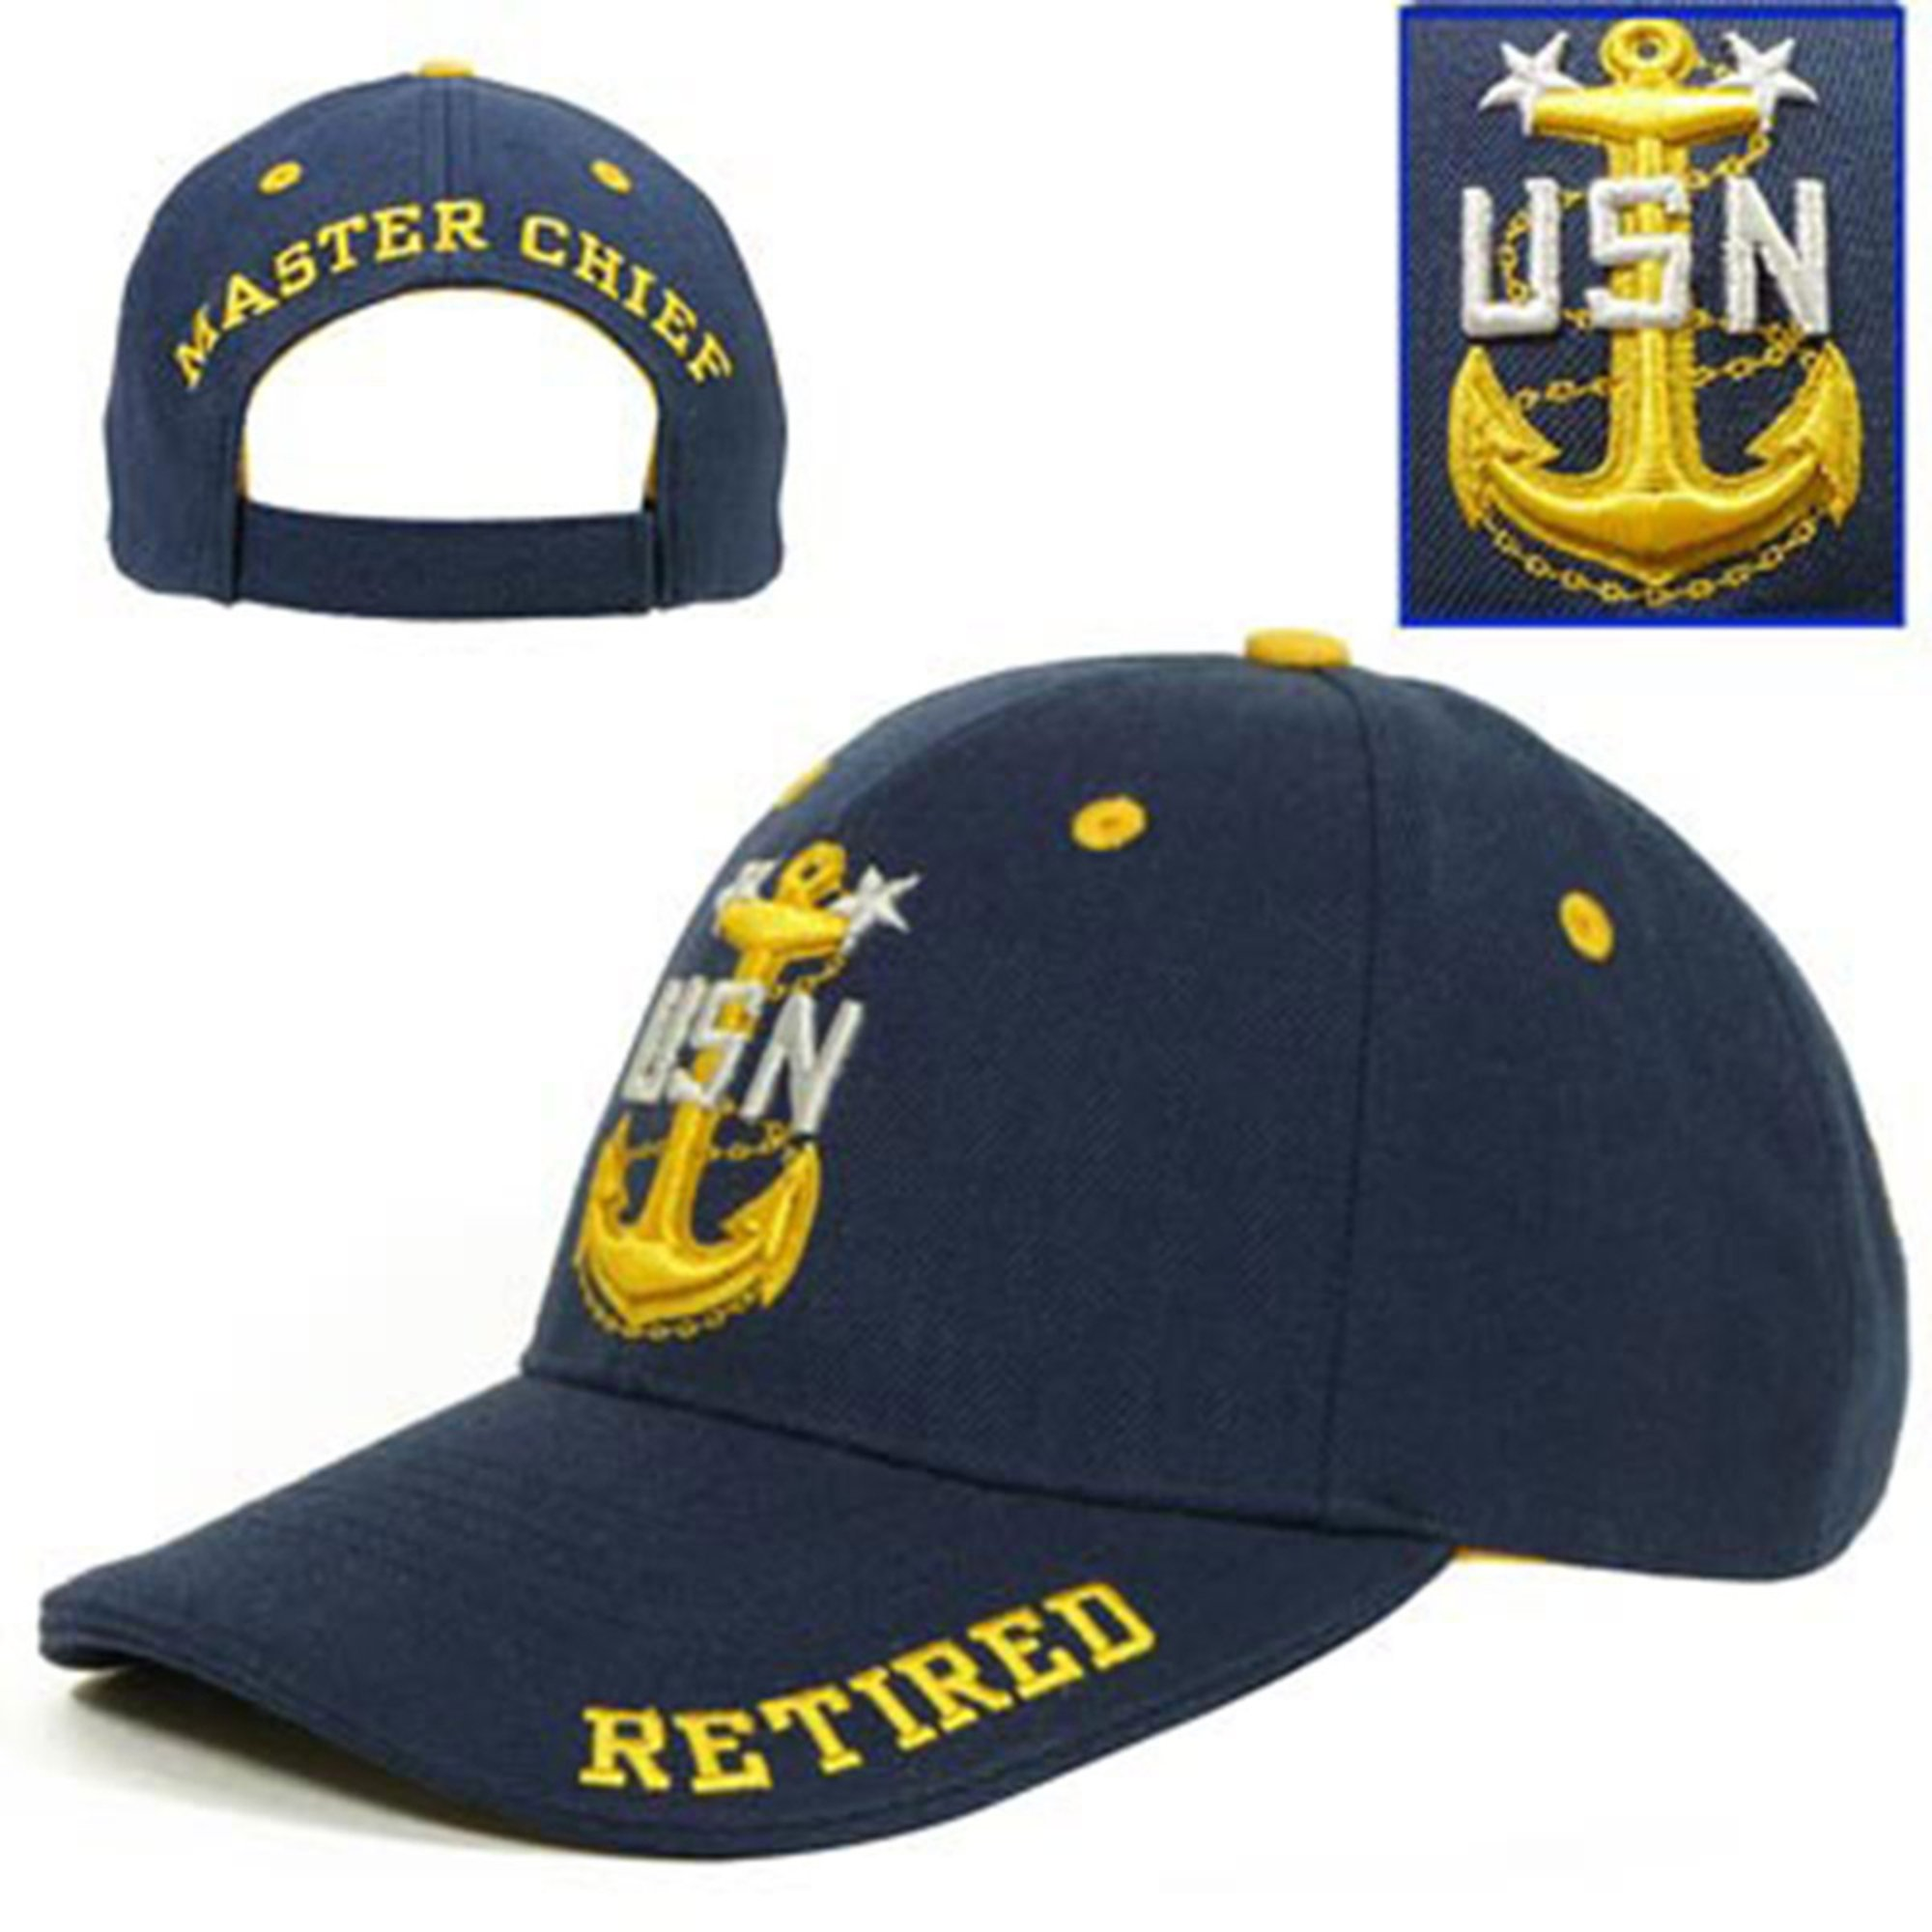 Fire for Effect. Fire For Effect USN Retired Master Chief Cap Navy a87f84ee73f